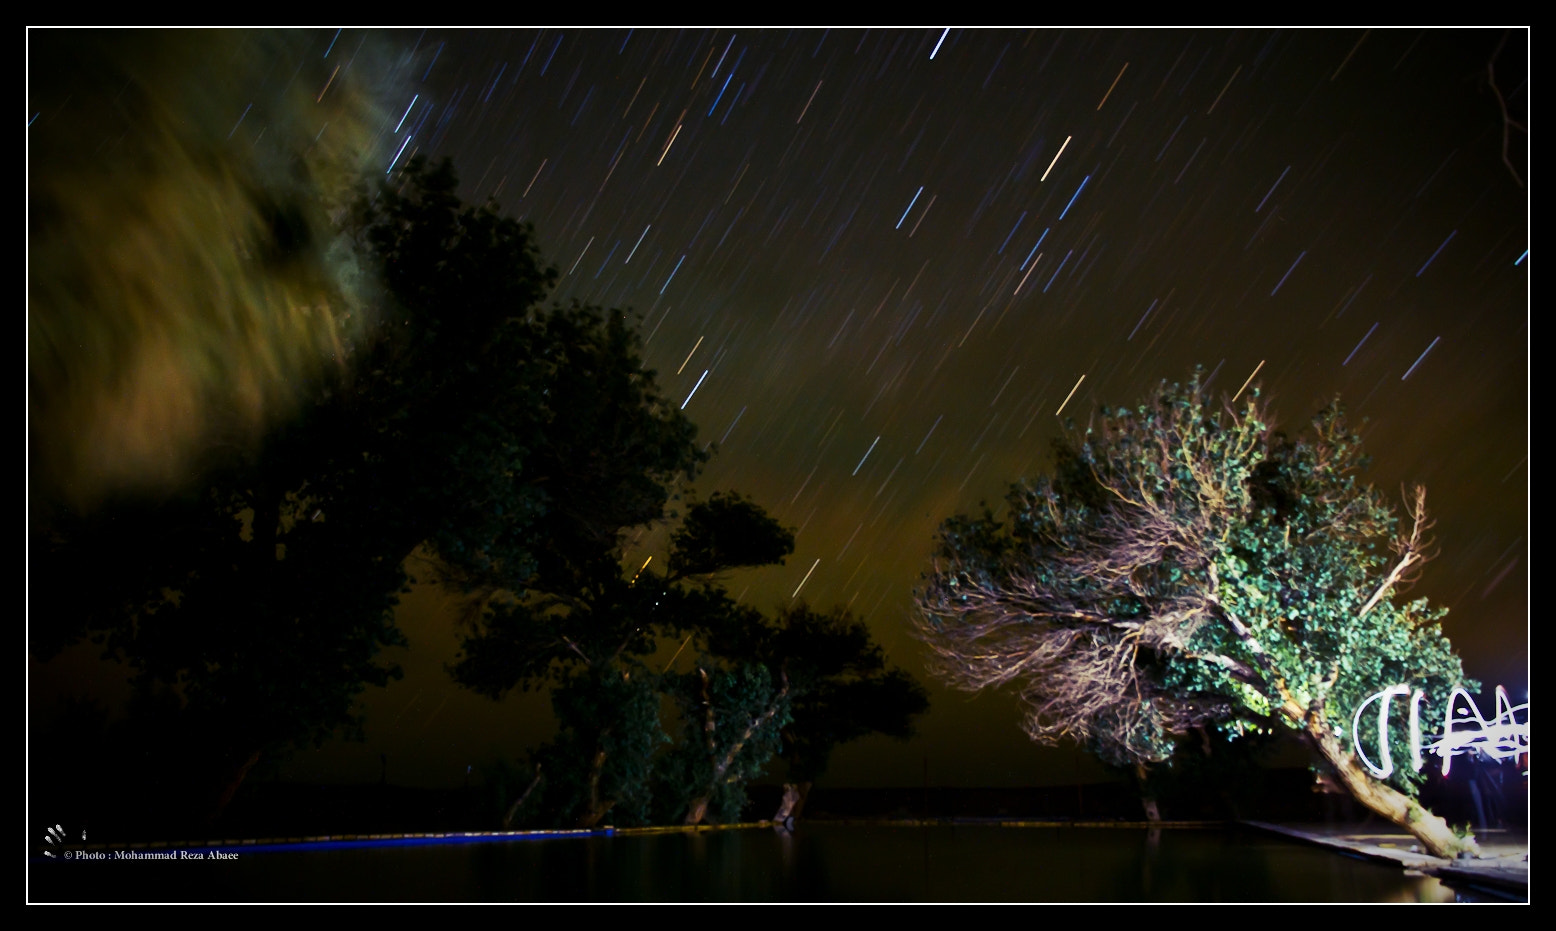 Photograph When Stars Fall! by Mohammad Reza Abaee on 500px